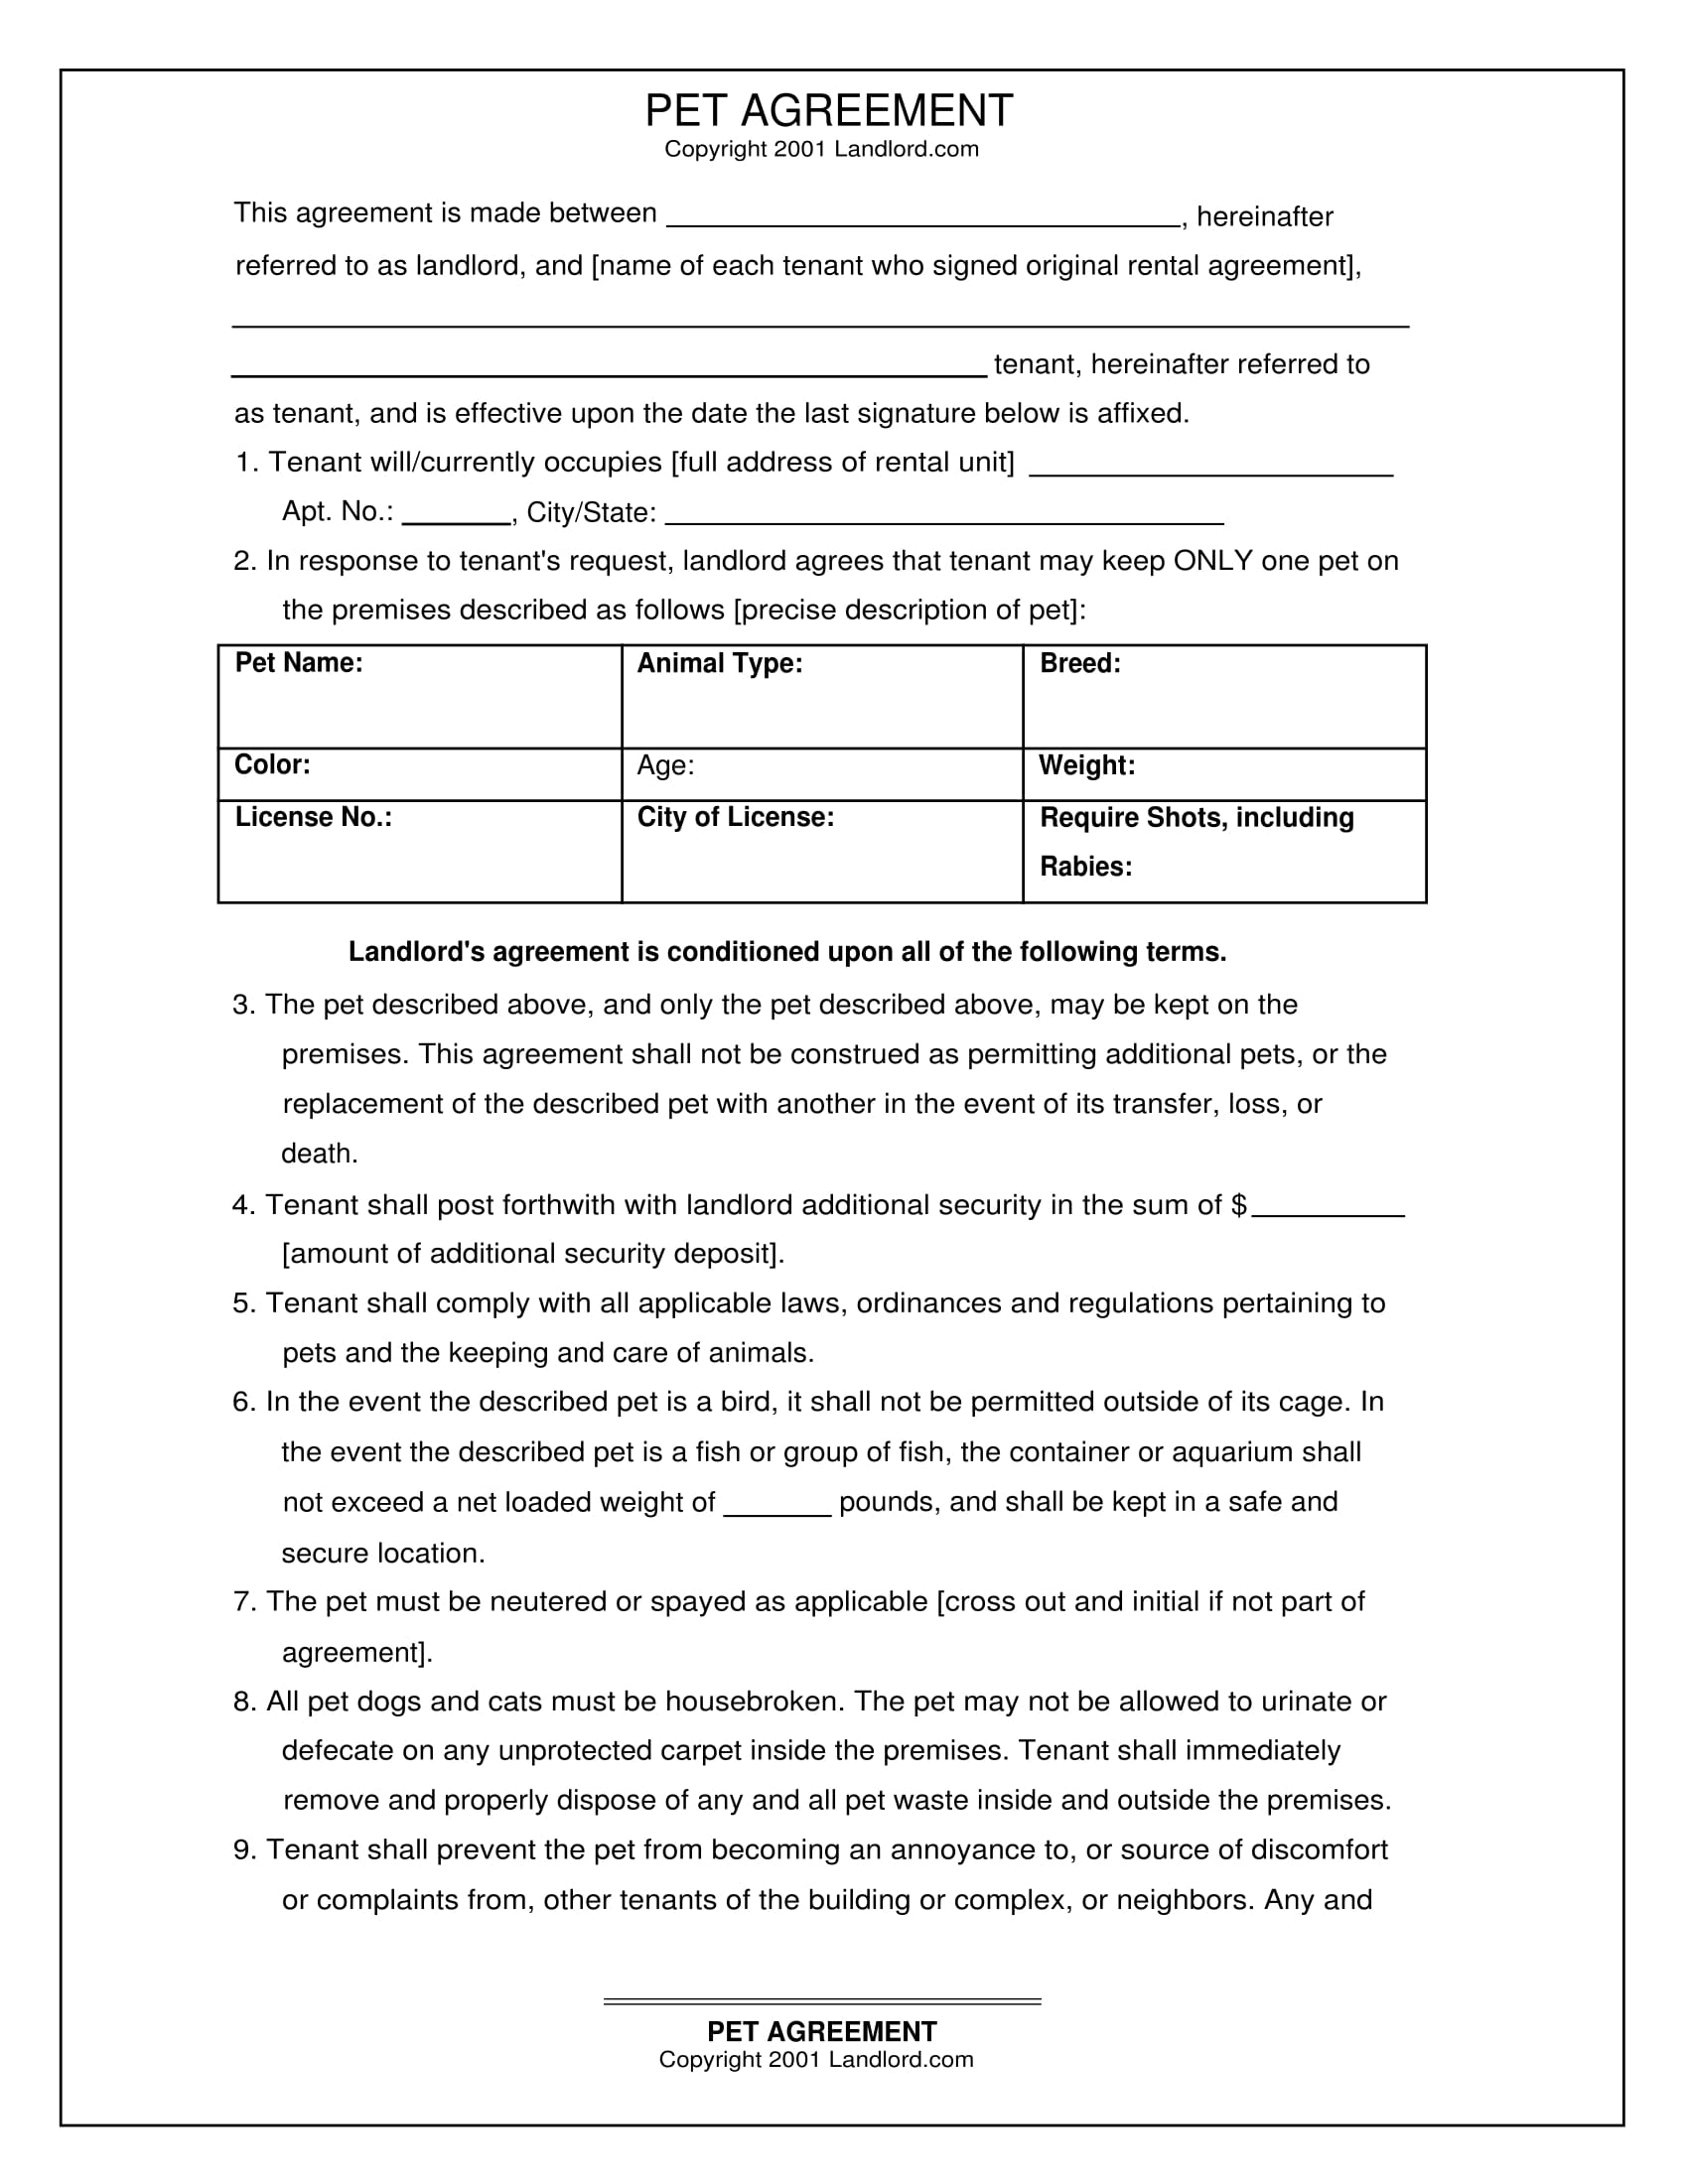 landlord pet agreement form 1